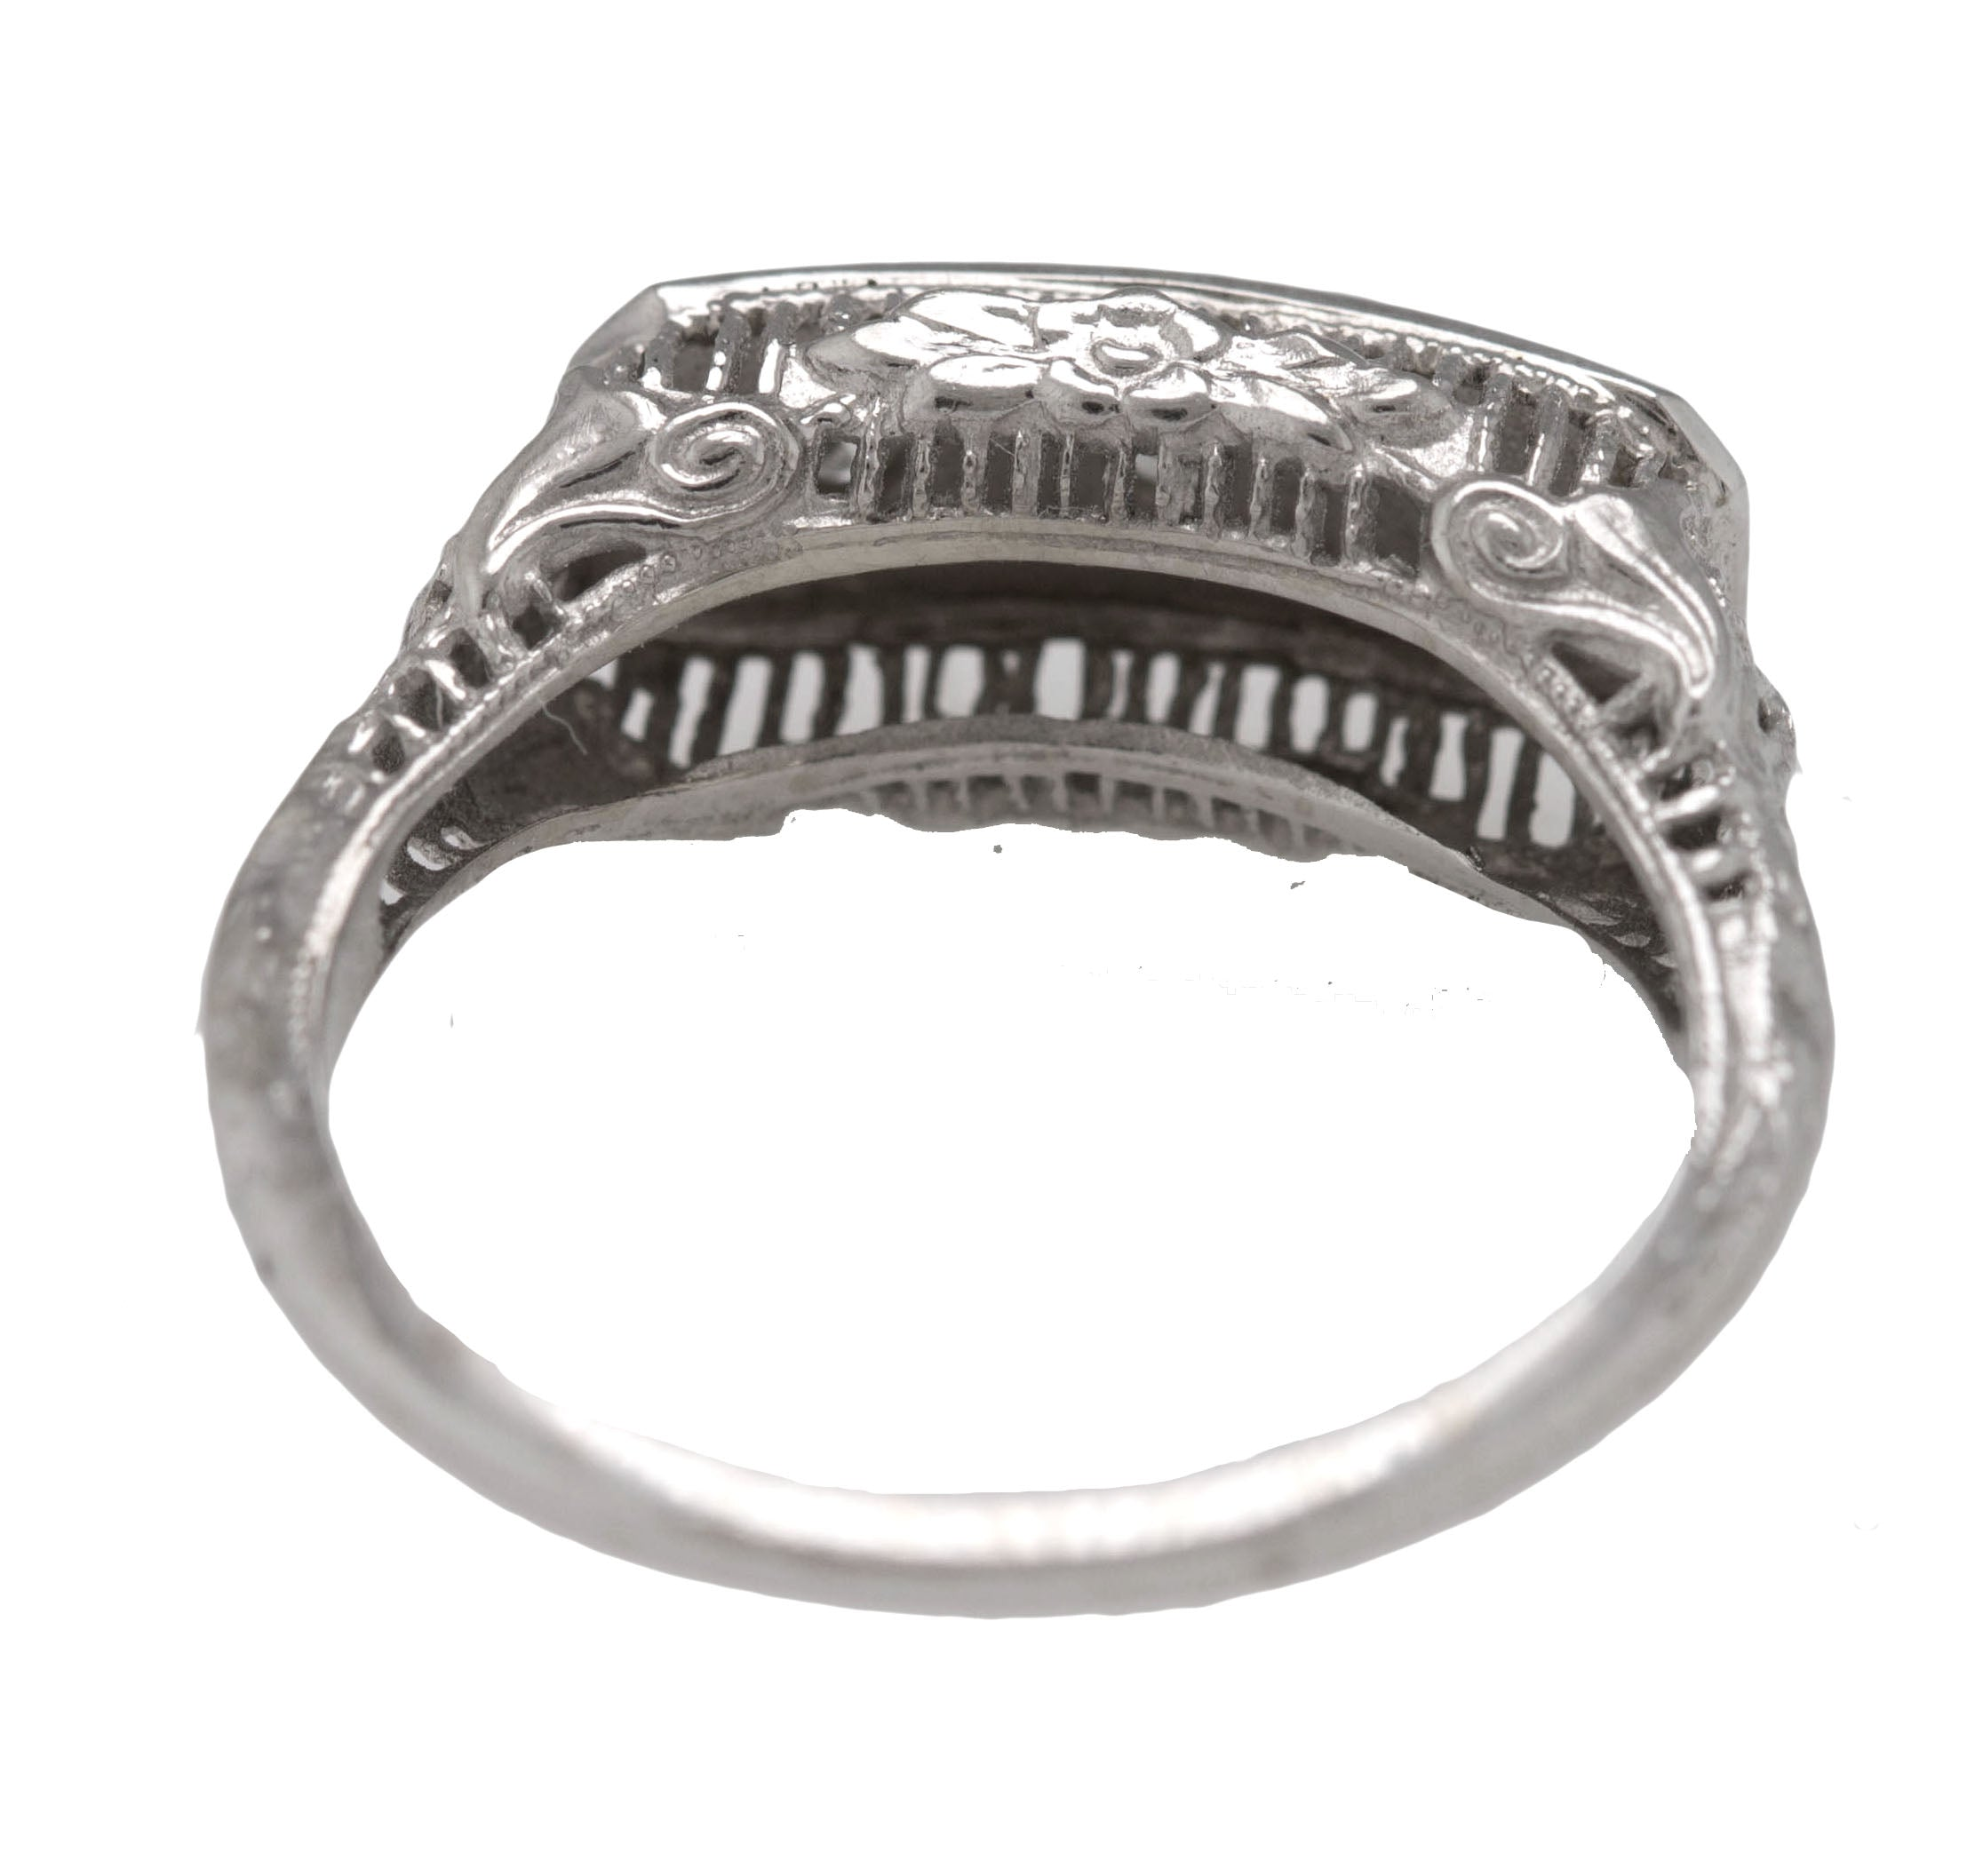 1930s Antique Art Deco 14K White Gold 3-Stone 0.12ctw Diamond Filigree Band Ring